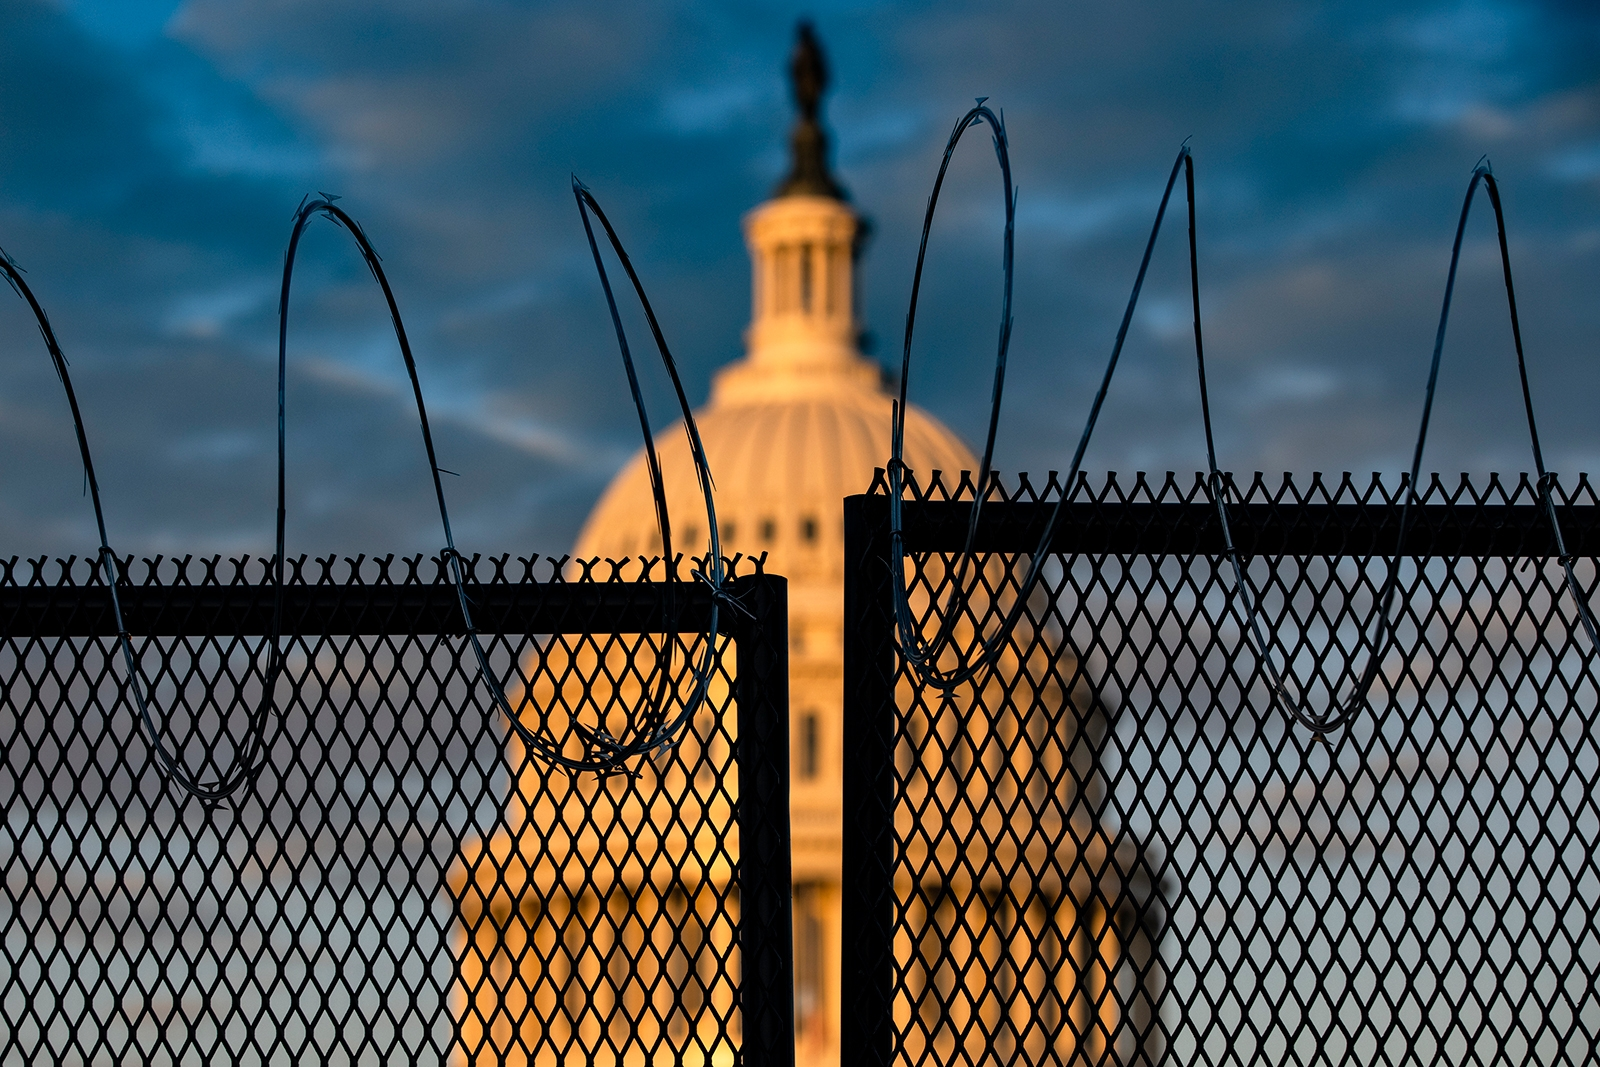 The proposal for permanent fencing comes weeks after a pro-Trump mob attacked the Capitol (Photo: CNN)